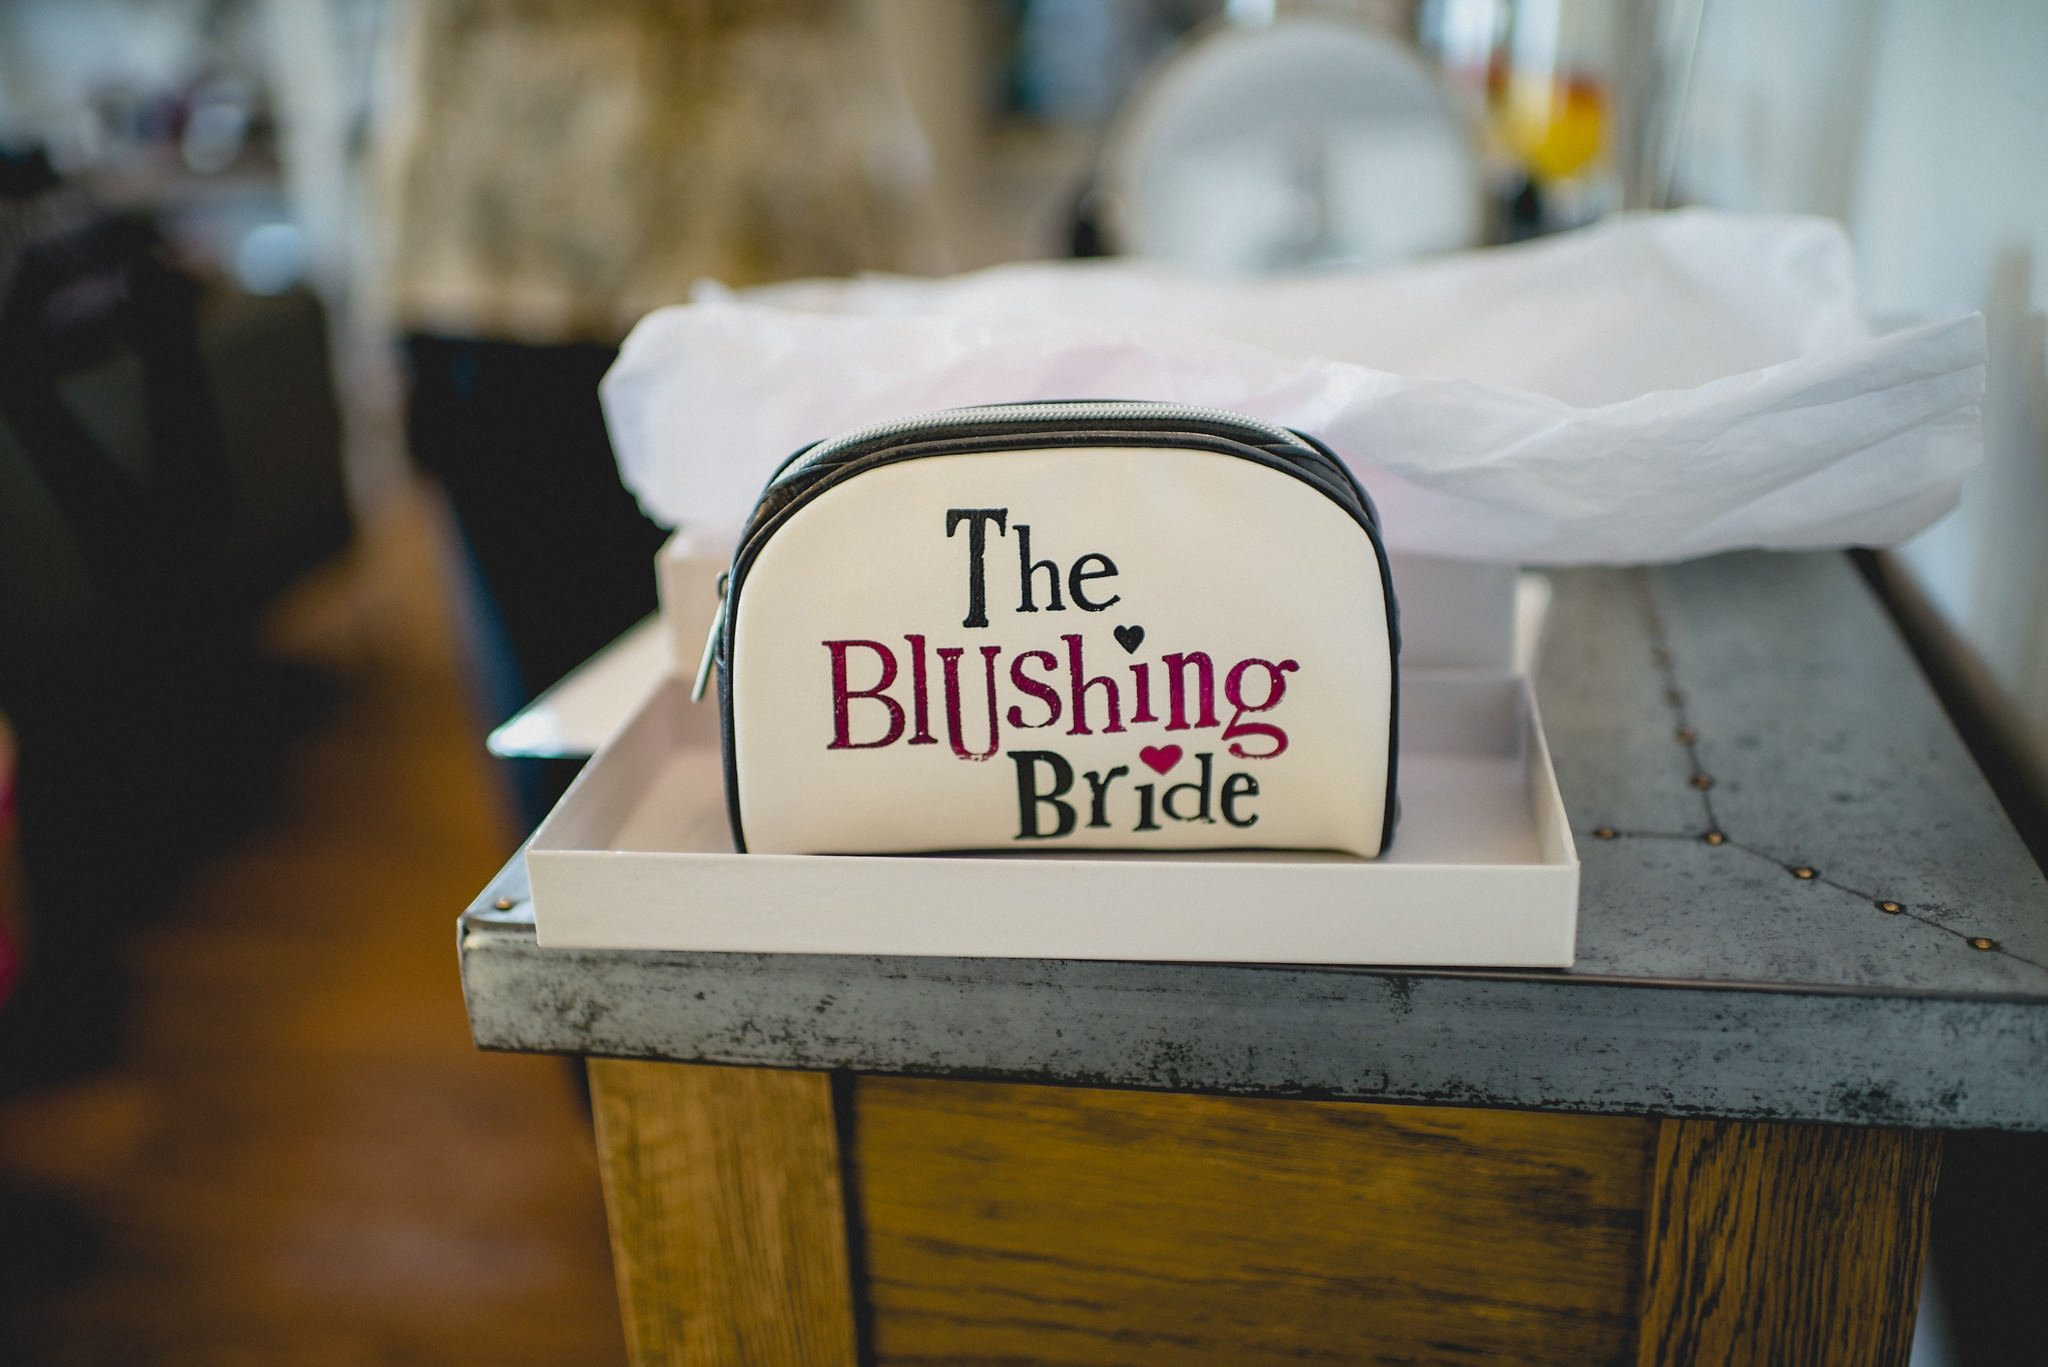 A cream a black leather make-up bag with the words 'The Blushing Bride' on the side.